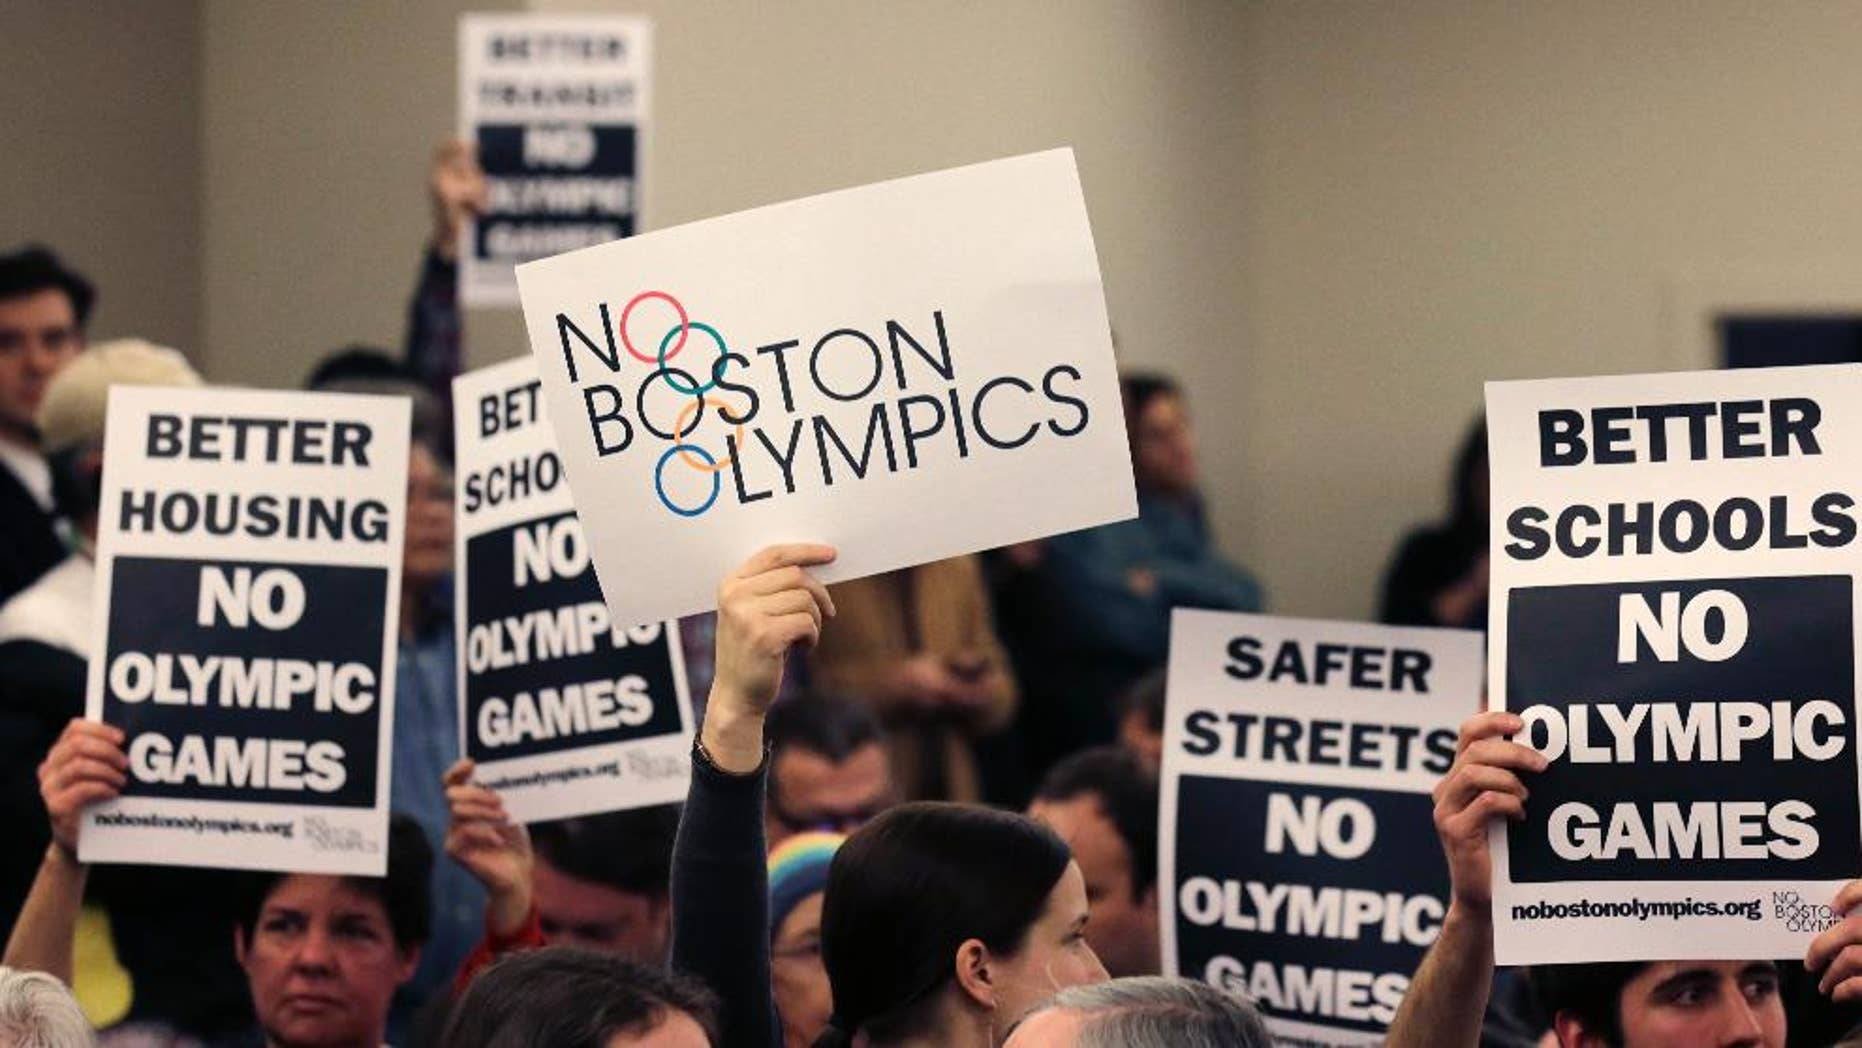 """FILE - In this Feb. 5, 2015, file photo, people hold up placards against the Olympic Games coming to Boston, during the first public forum regarding the city's 2024 Olympic bid, in Boston. Boston's mayor delivered a harsh blow to the city's effort to host the 2024 Olympics on Monday, July 27, 2015,  when he declared he wouldn't sign any document """"that puts one dollar of taxpayer money on the line for one penny of overruns on the Olympics.""""  That document is the host city contract that most in the Olympics consider crucial to any city's success.  (AP Photo/Charles Krupa, File)"""